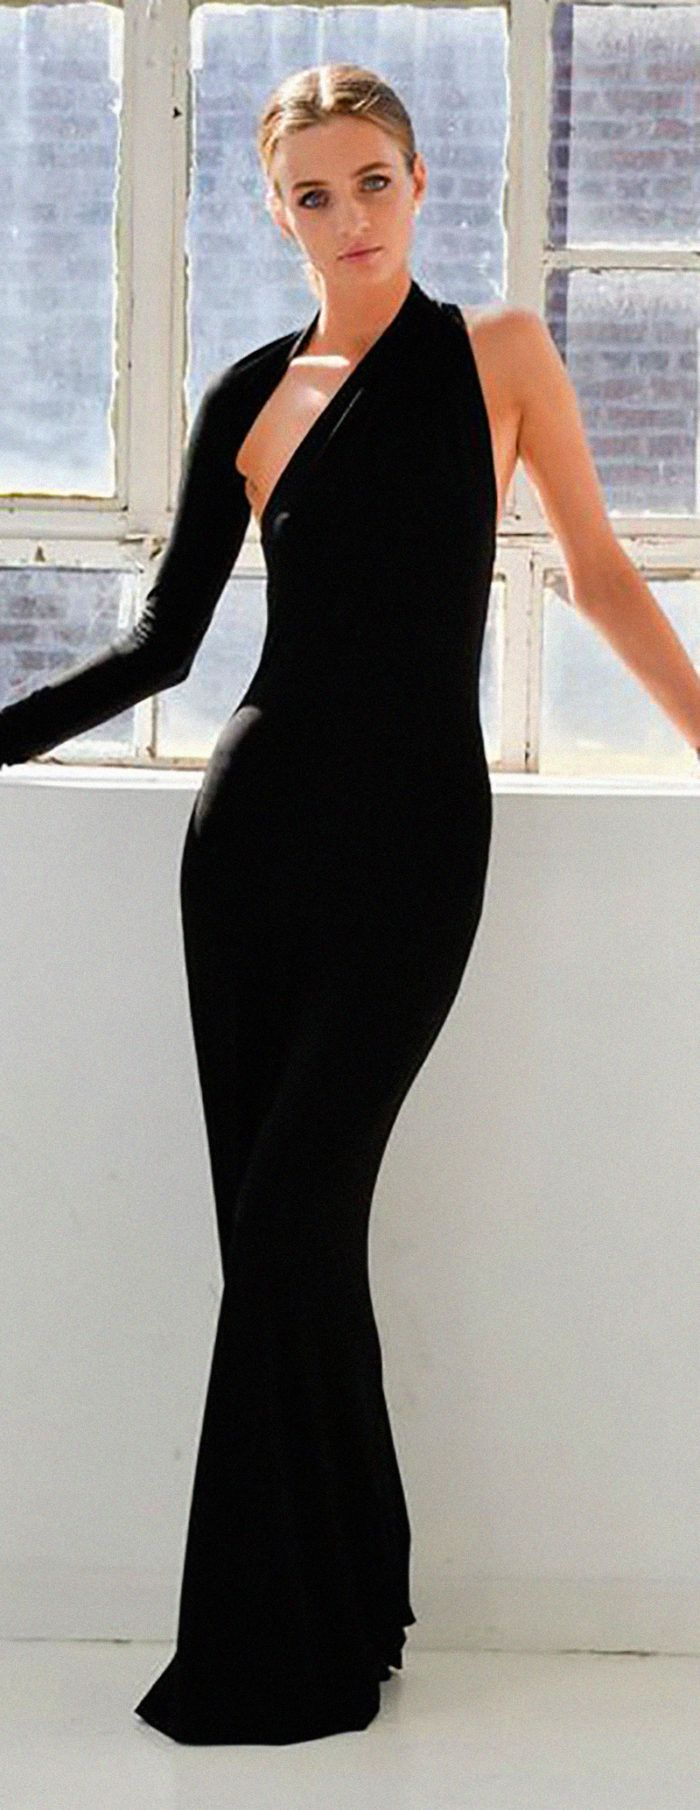 17 Best ideas about Elegant Black Dresses on Pinterest | Elegant ...